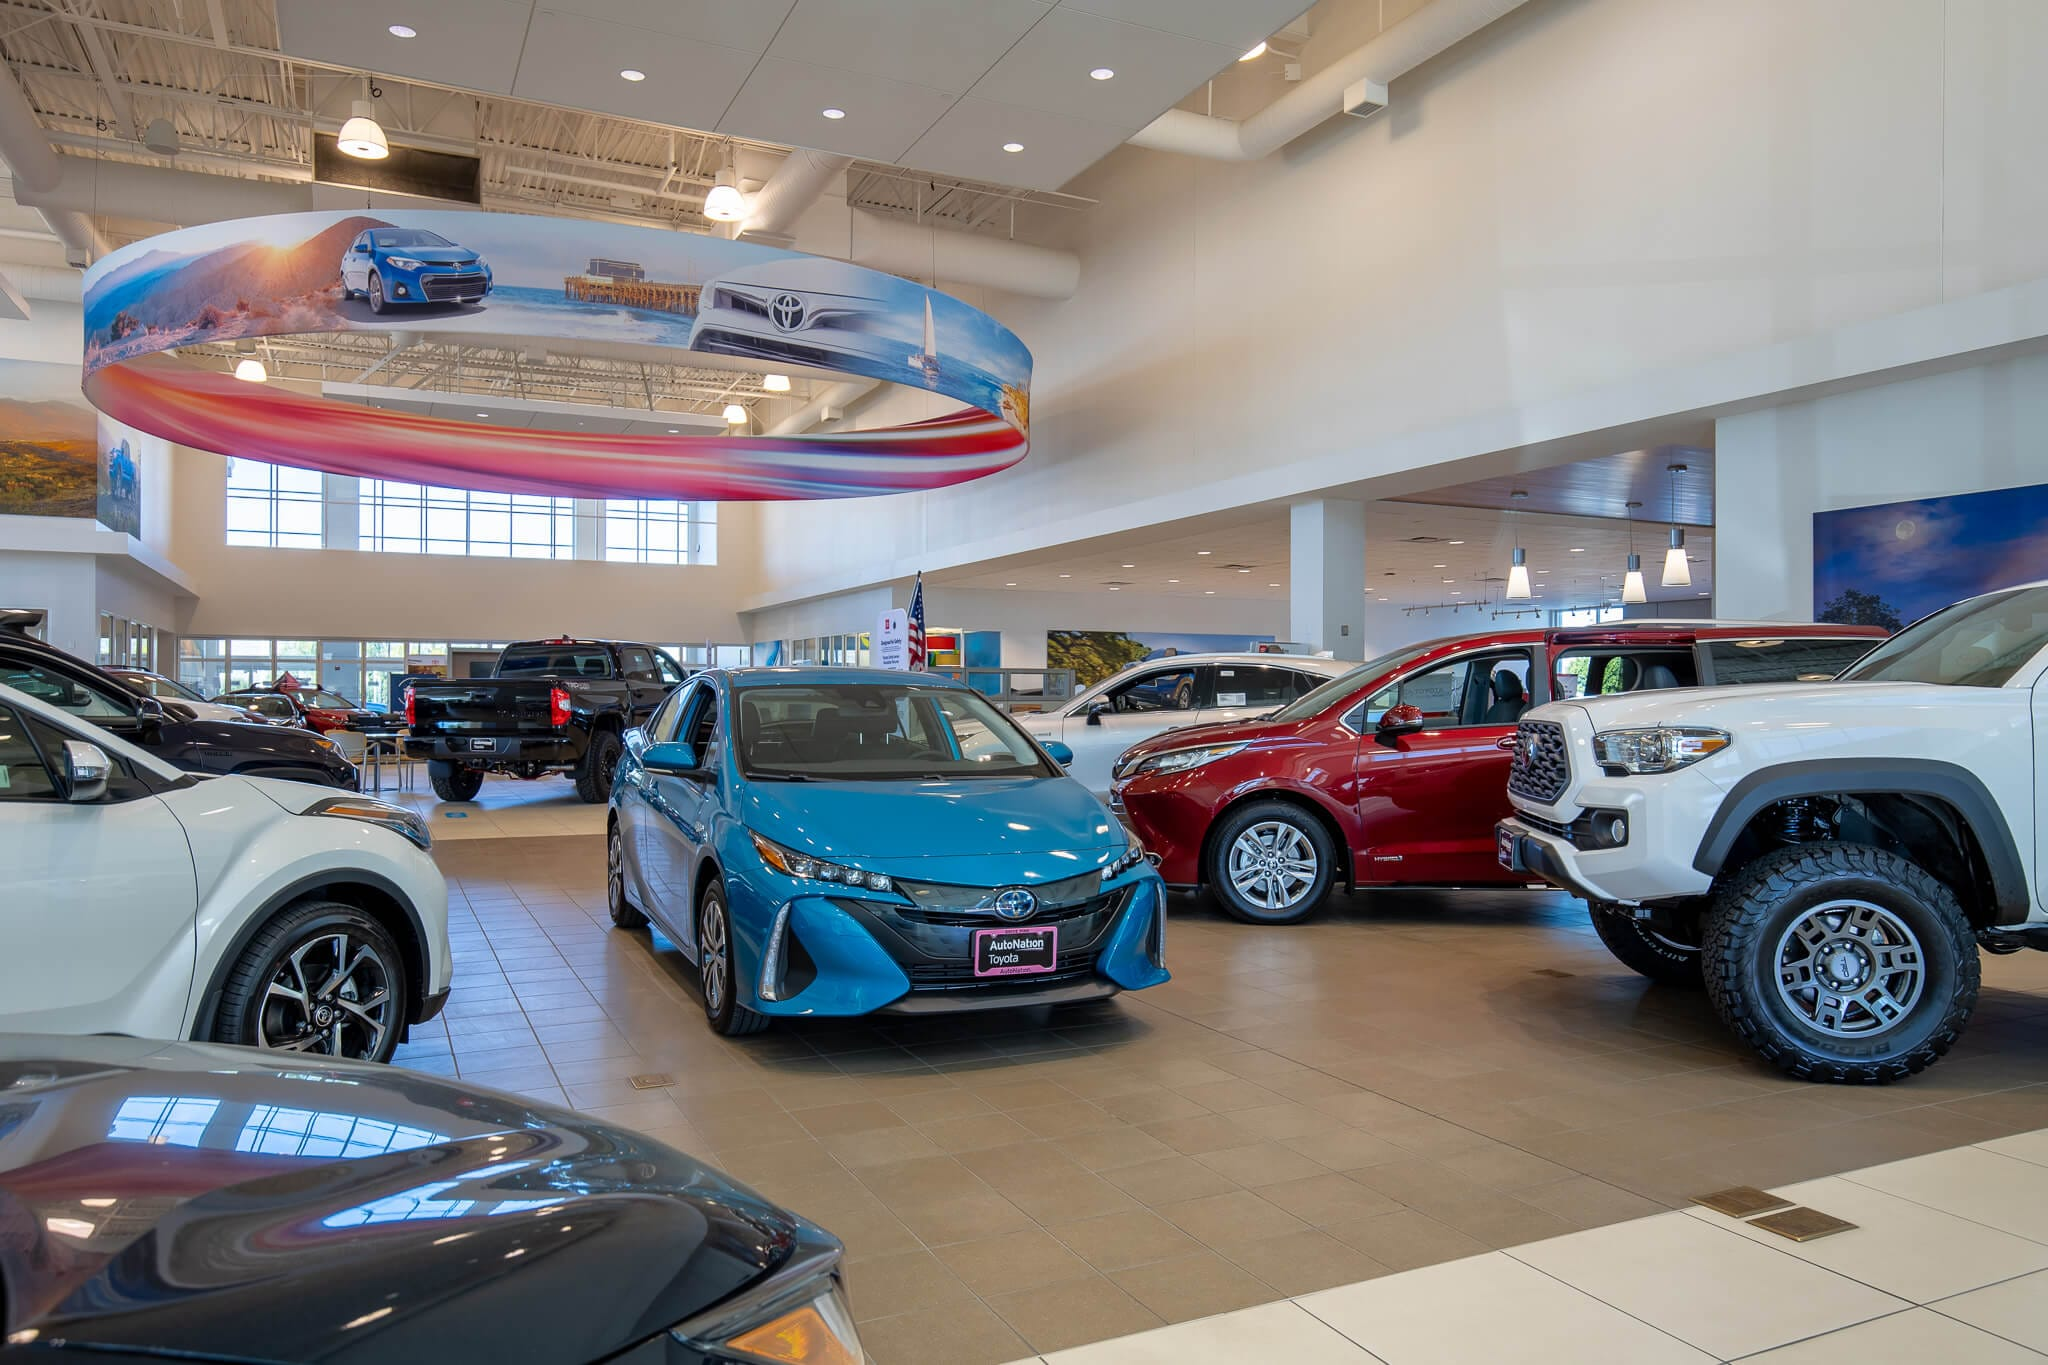 Interior view of the Toyota showroom at AutoNation Toyota Irvine